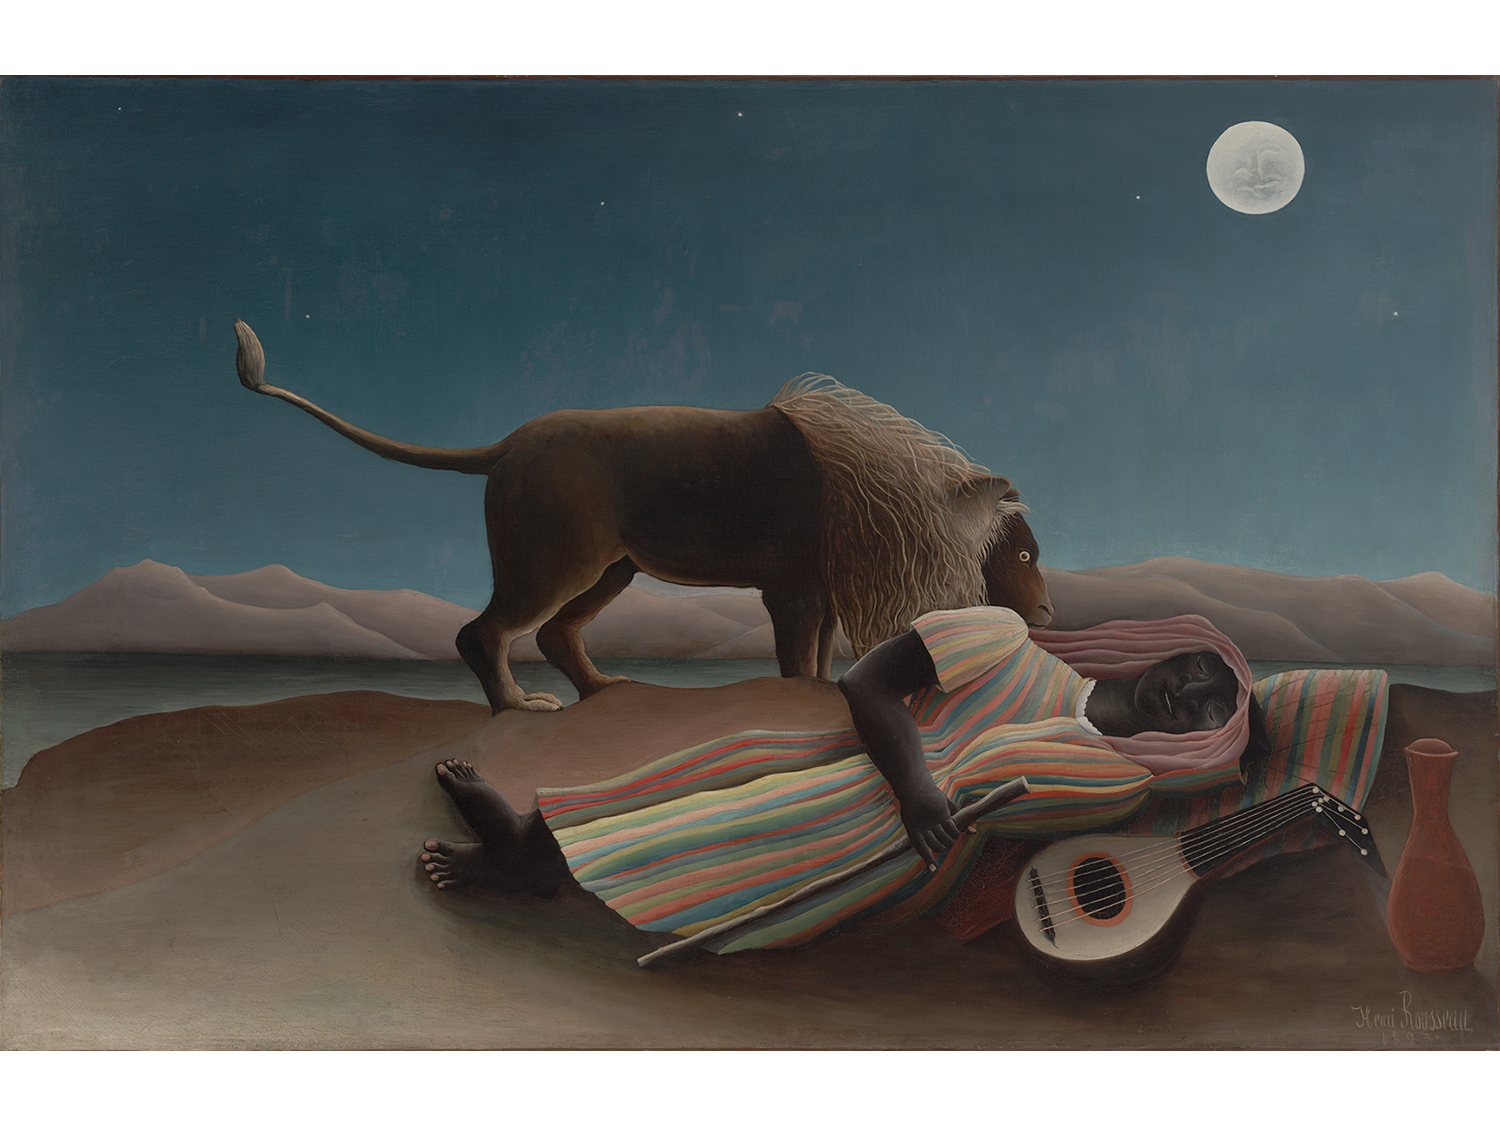 Henri Rousseau, The Sleeping Gypsy (1897)